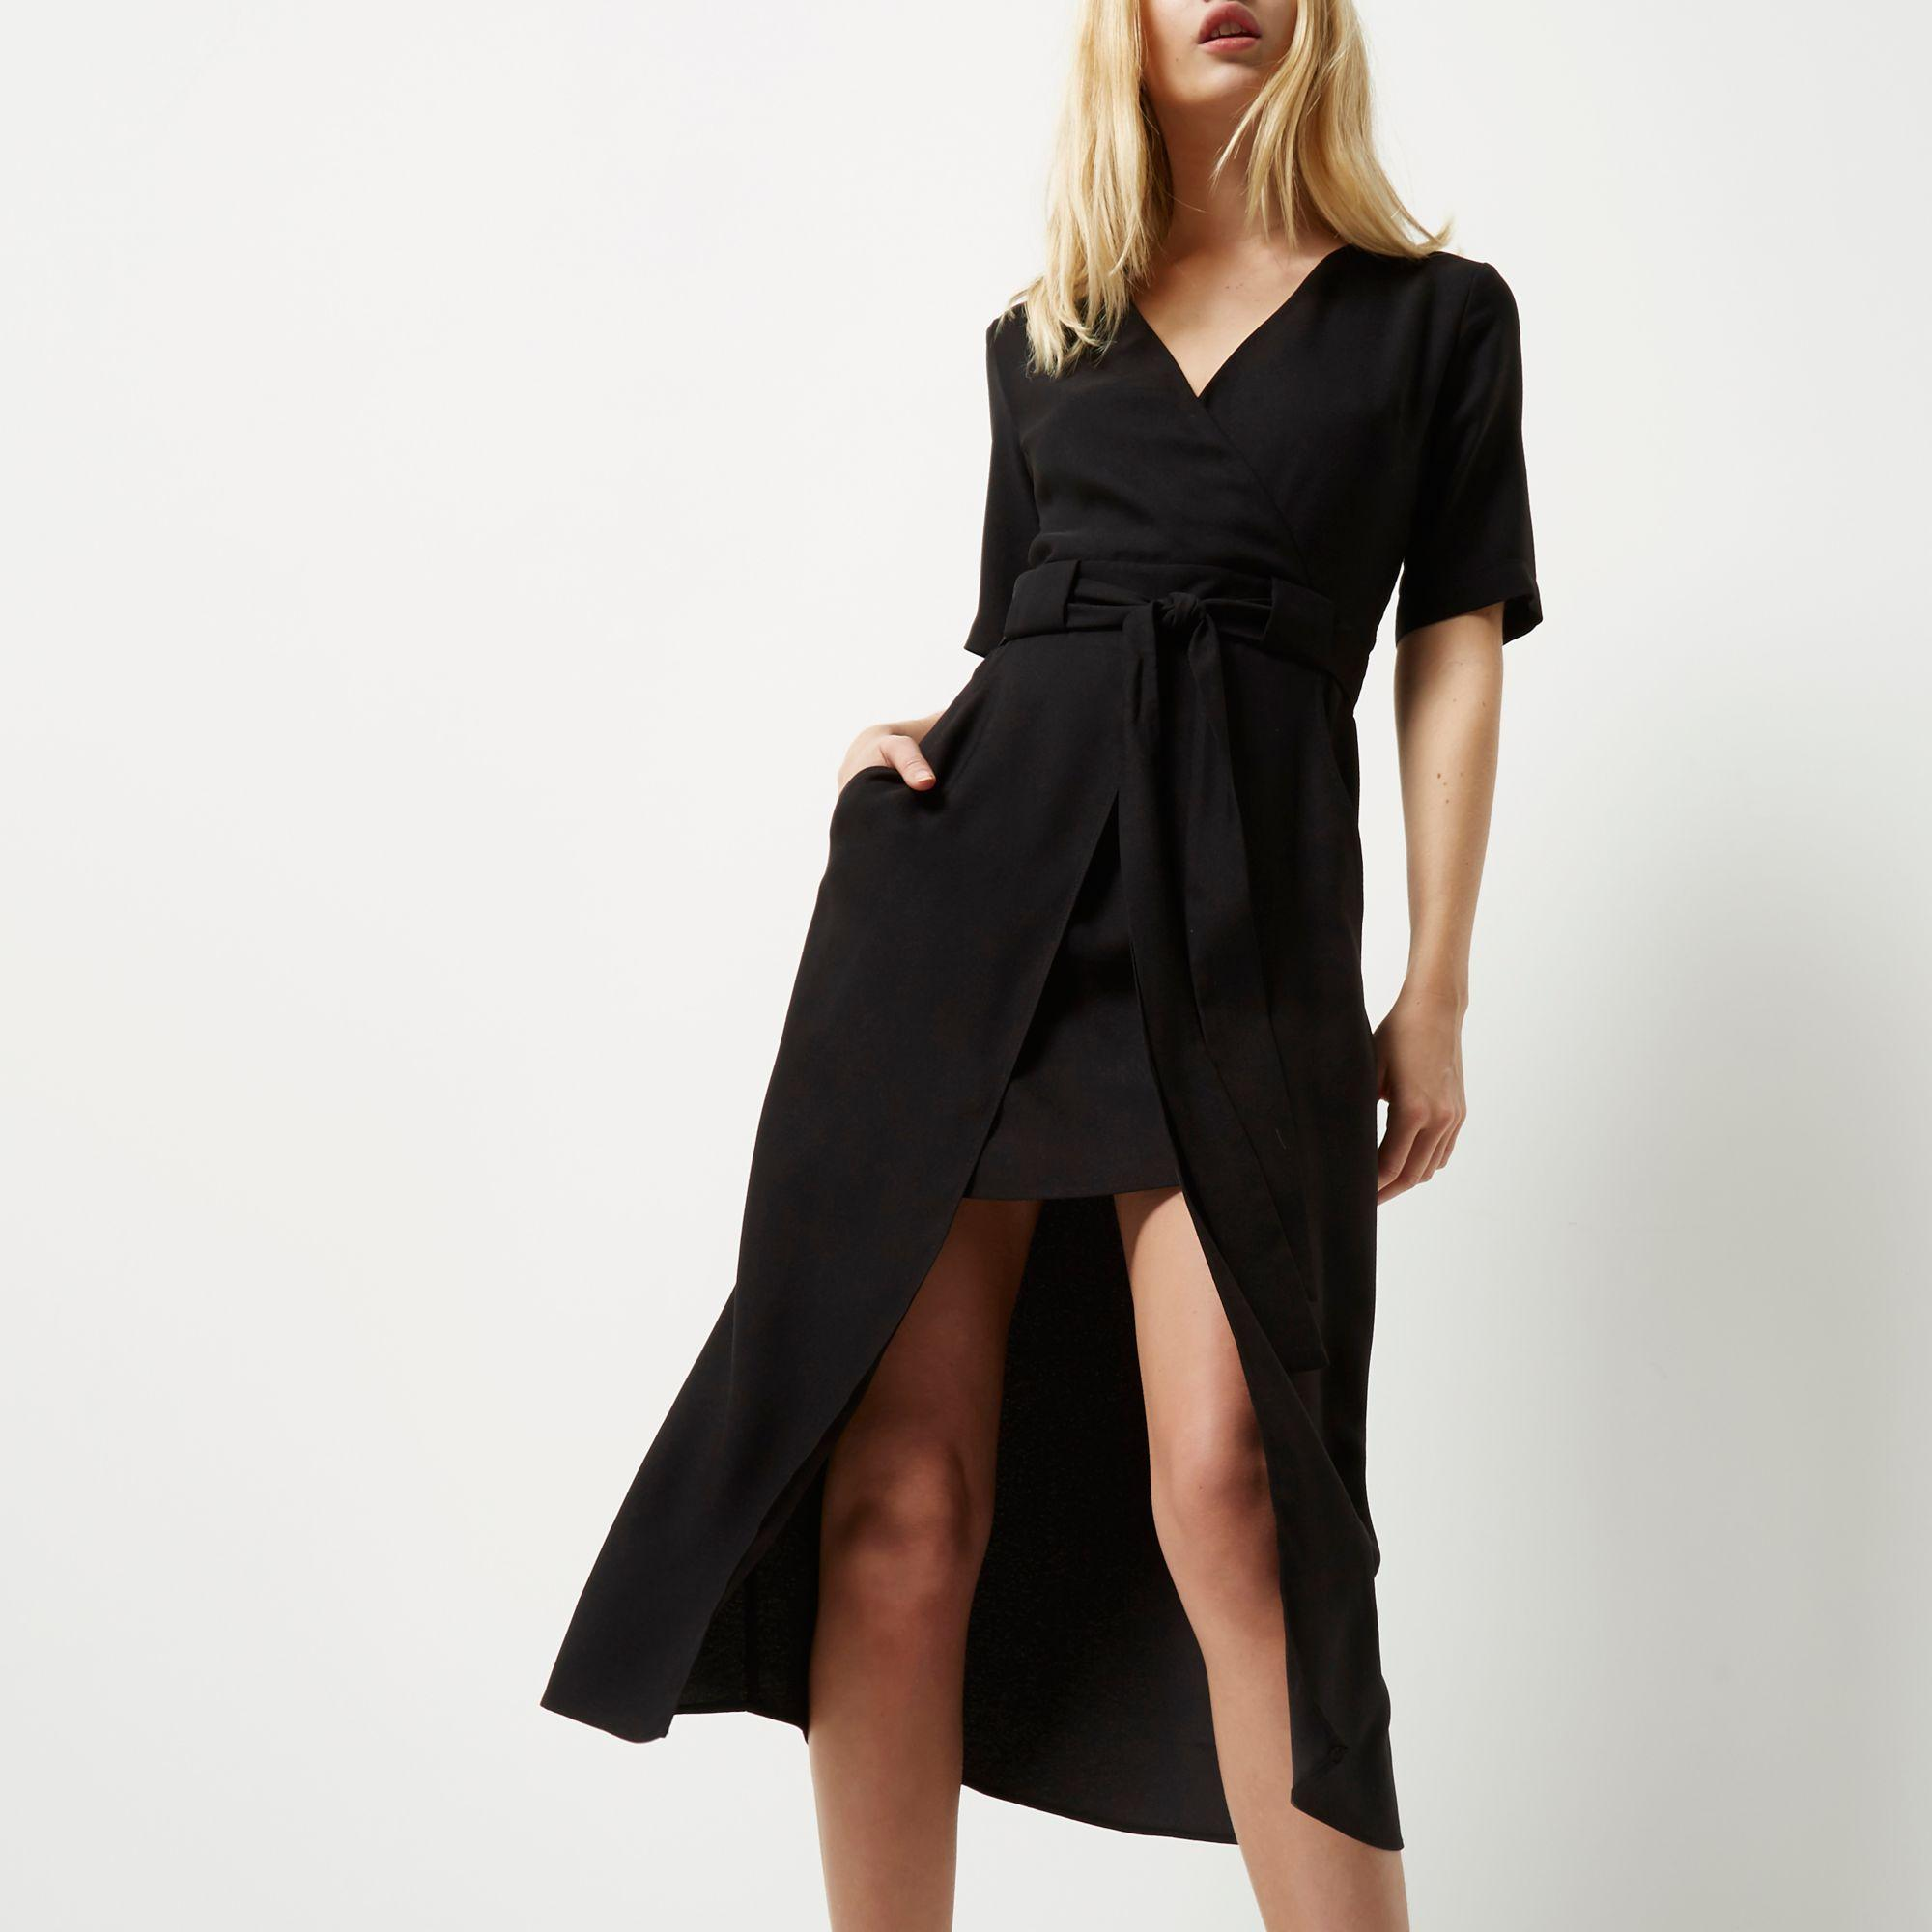 2c131aef394 Black Wrap Short Sleeve Midi Dress – Little Black Dress | Black Lace ...